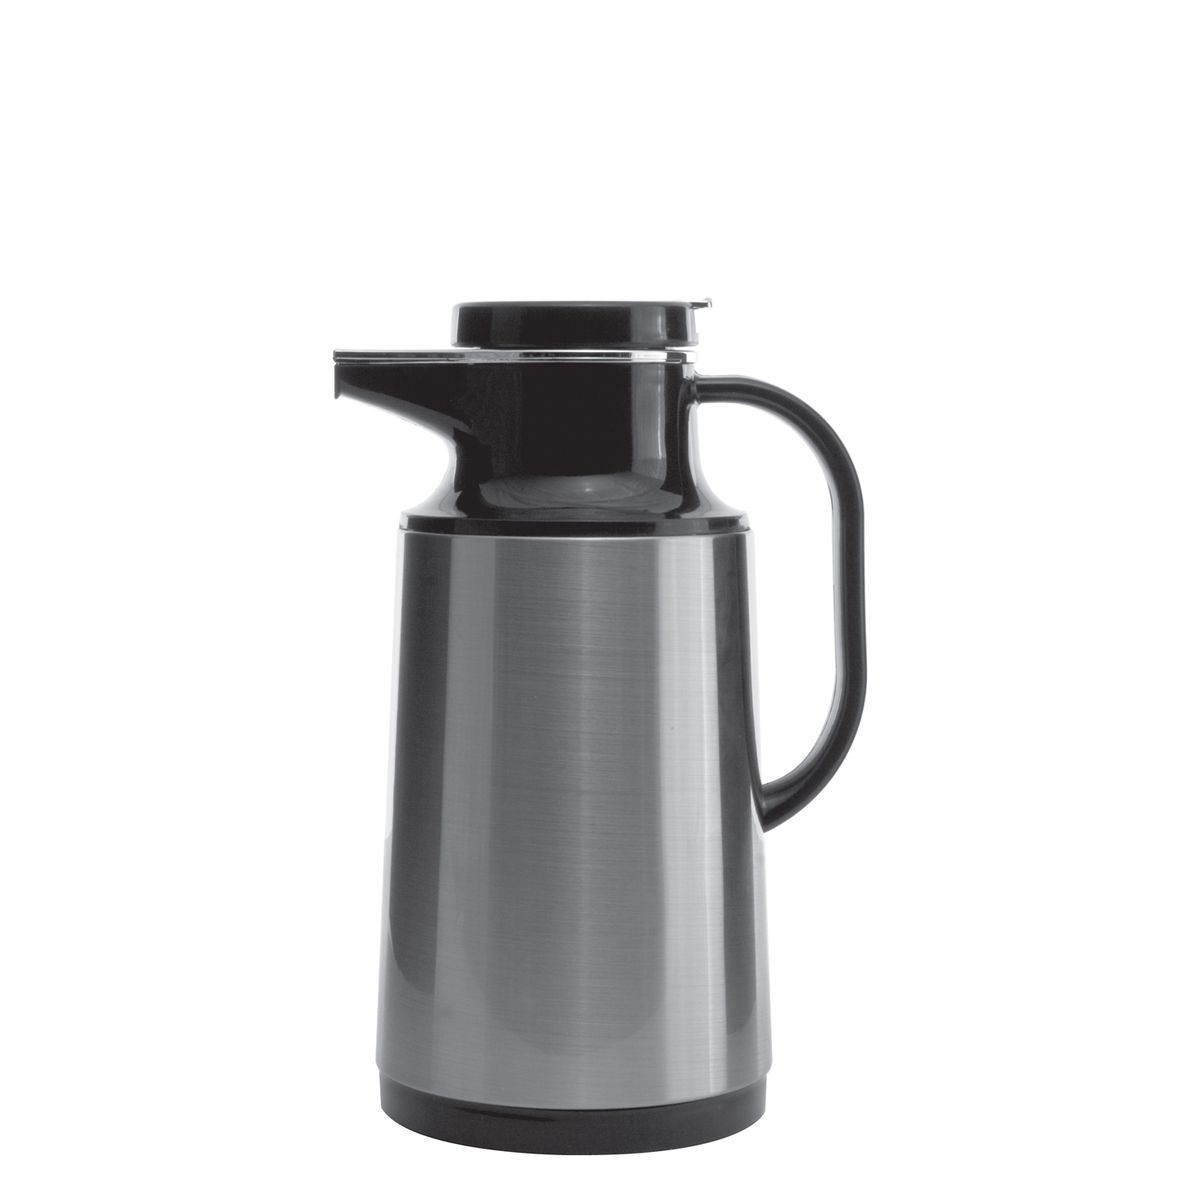 Service Ideas HPS161 Brushed Stainless Coffee Server, 1.6 Liter